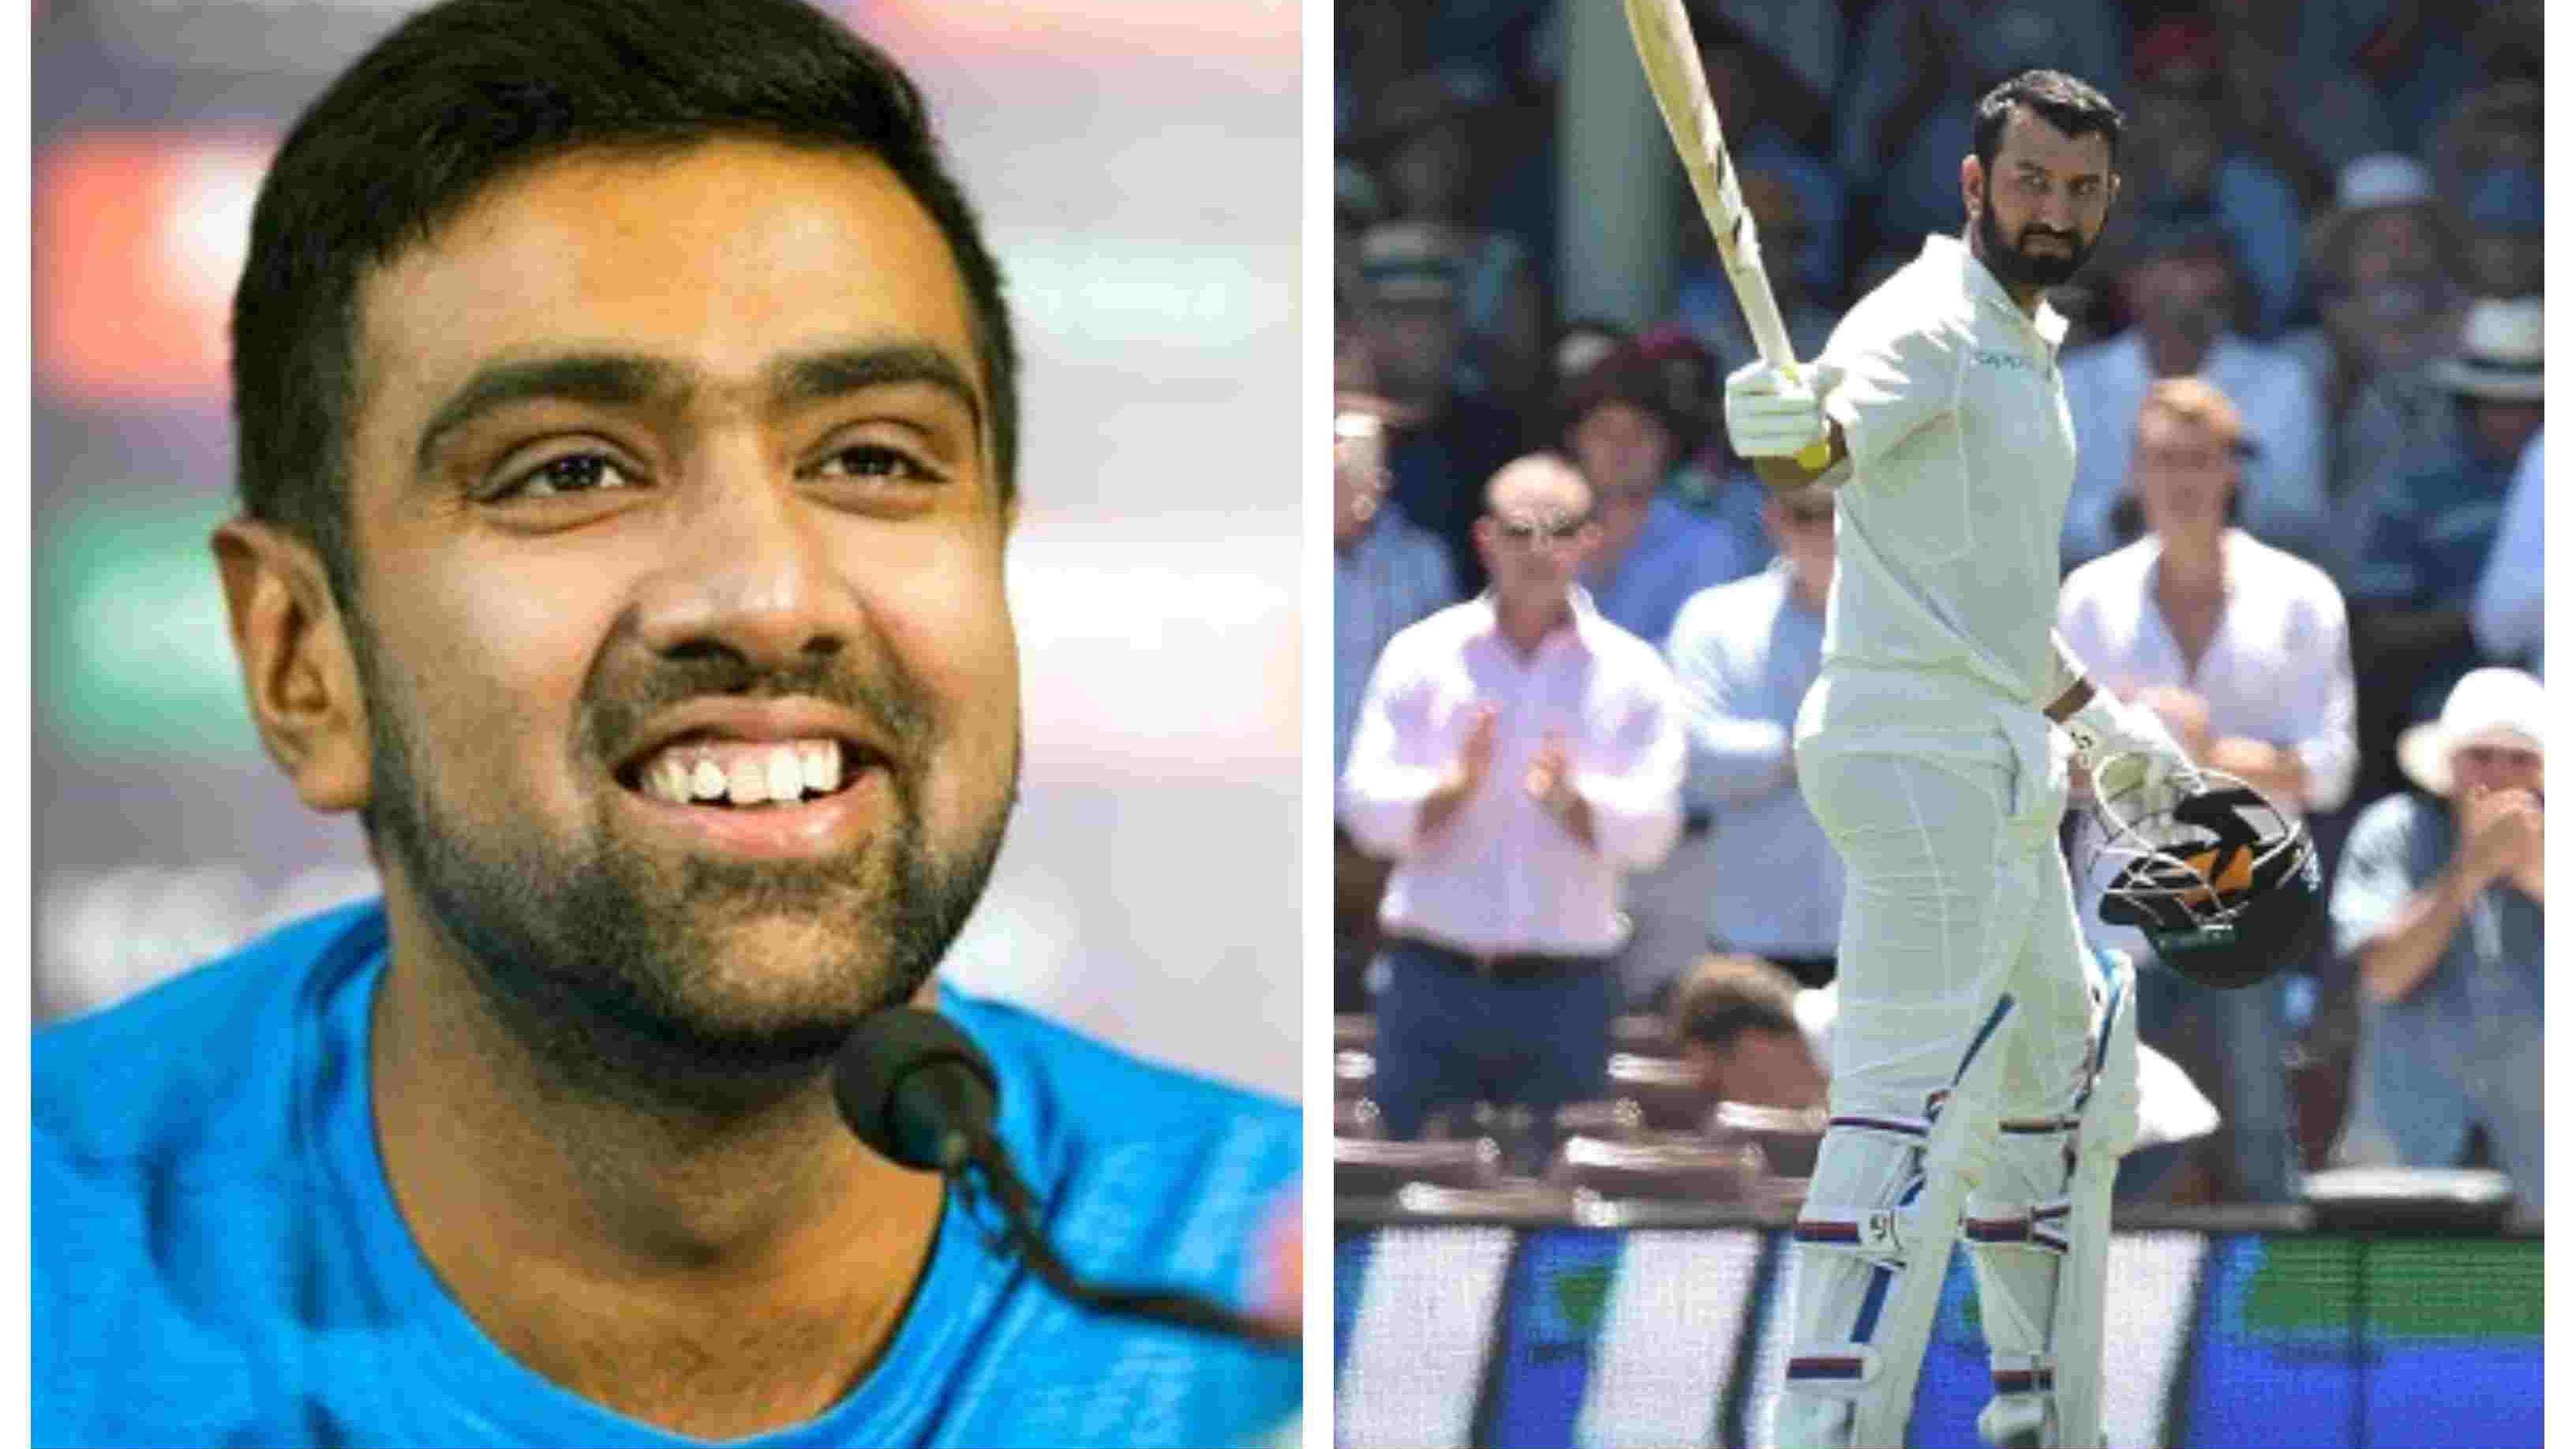 AUS v IND 2018-19: Ashwin lauds Pujara's patience by posting a hilarious meme